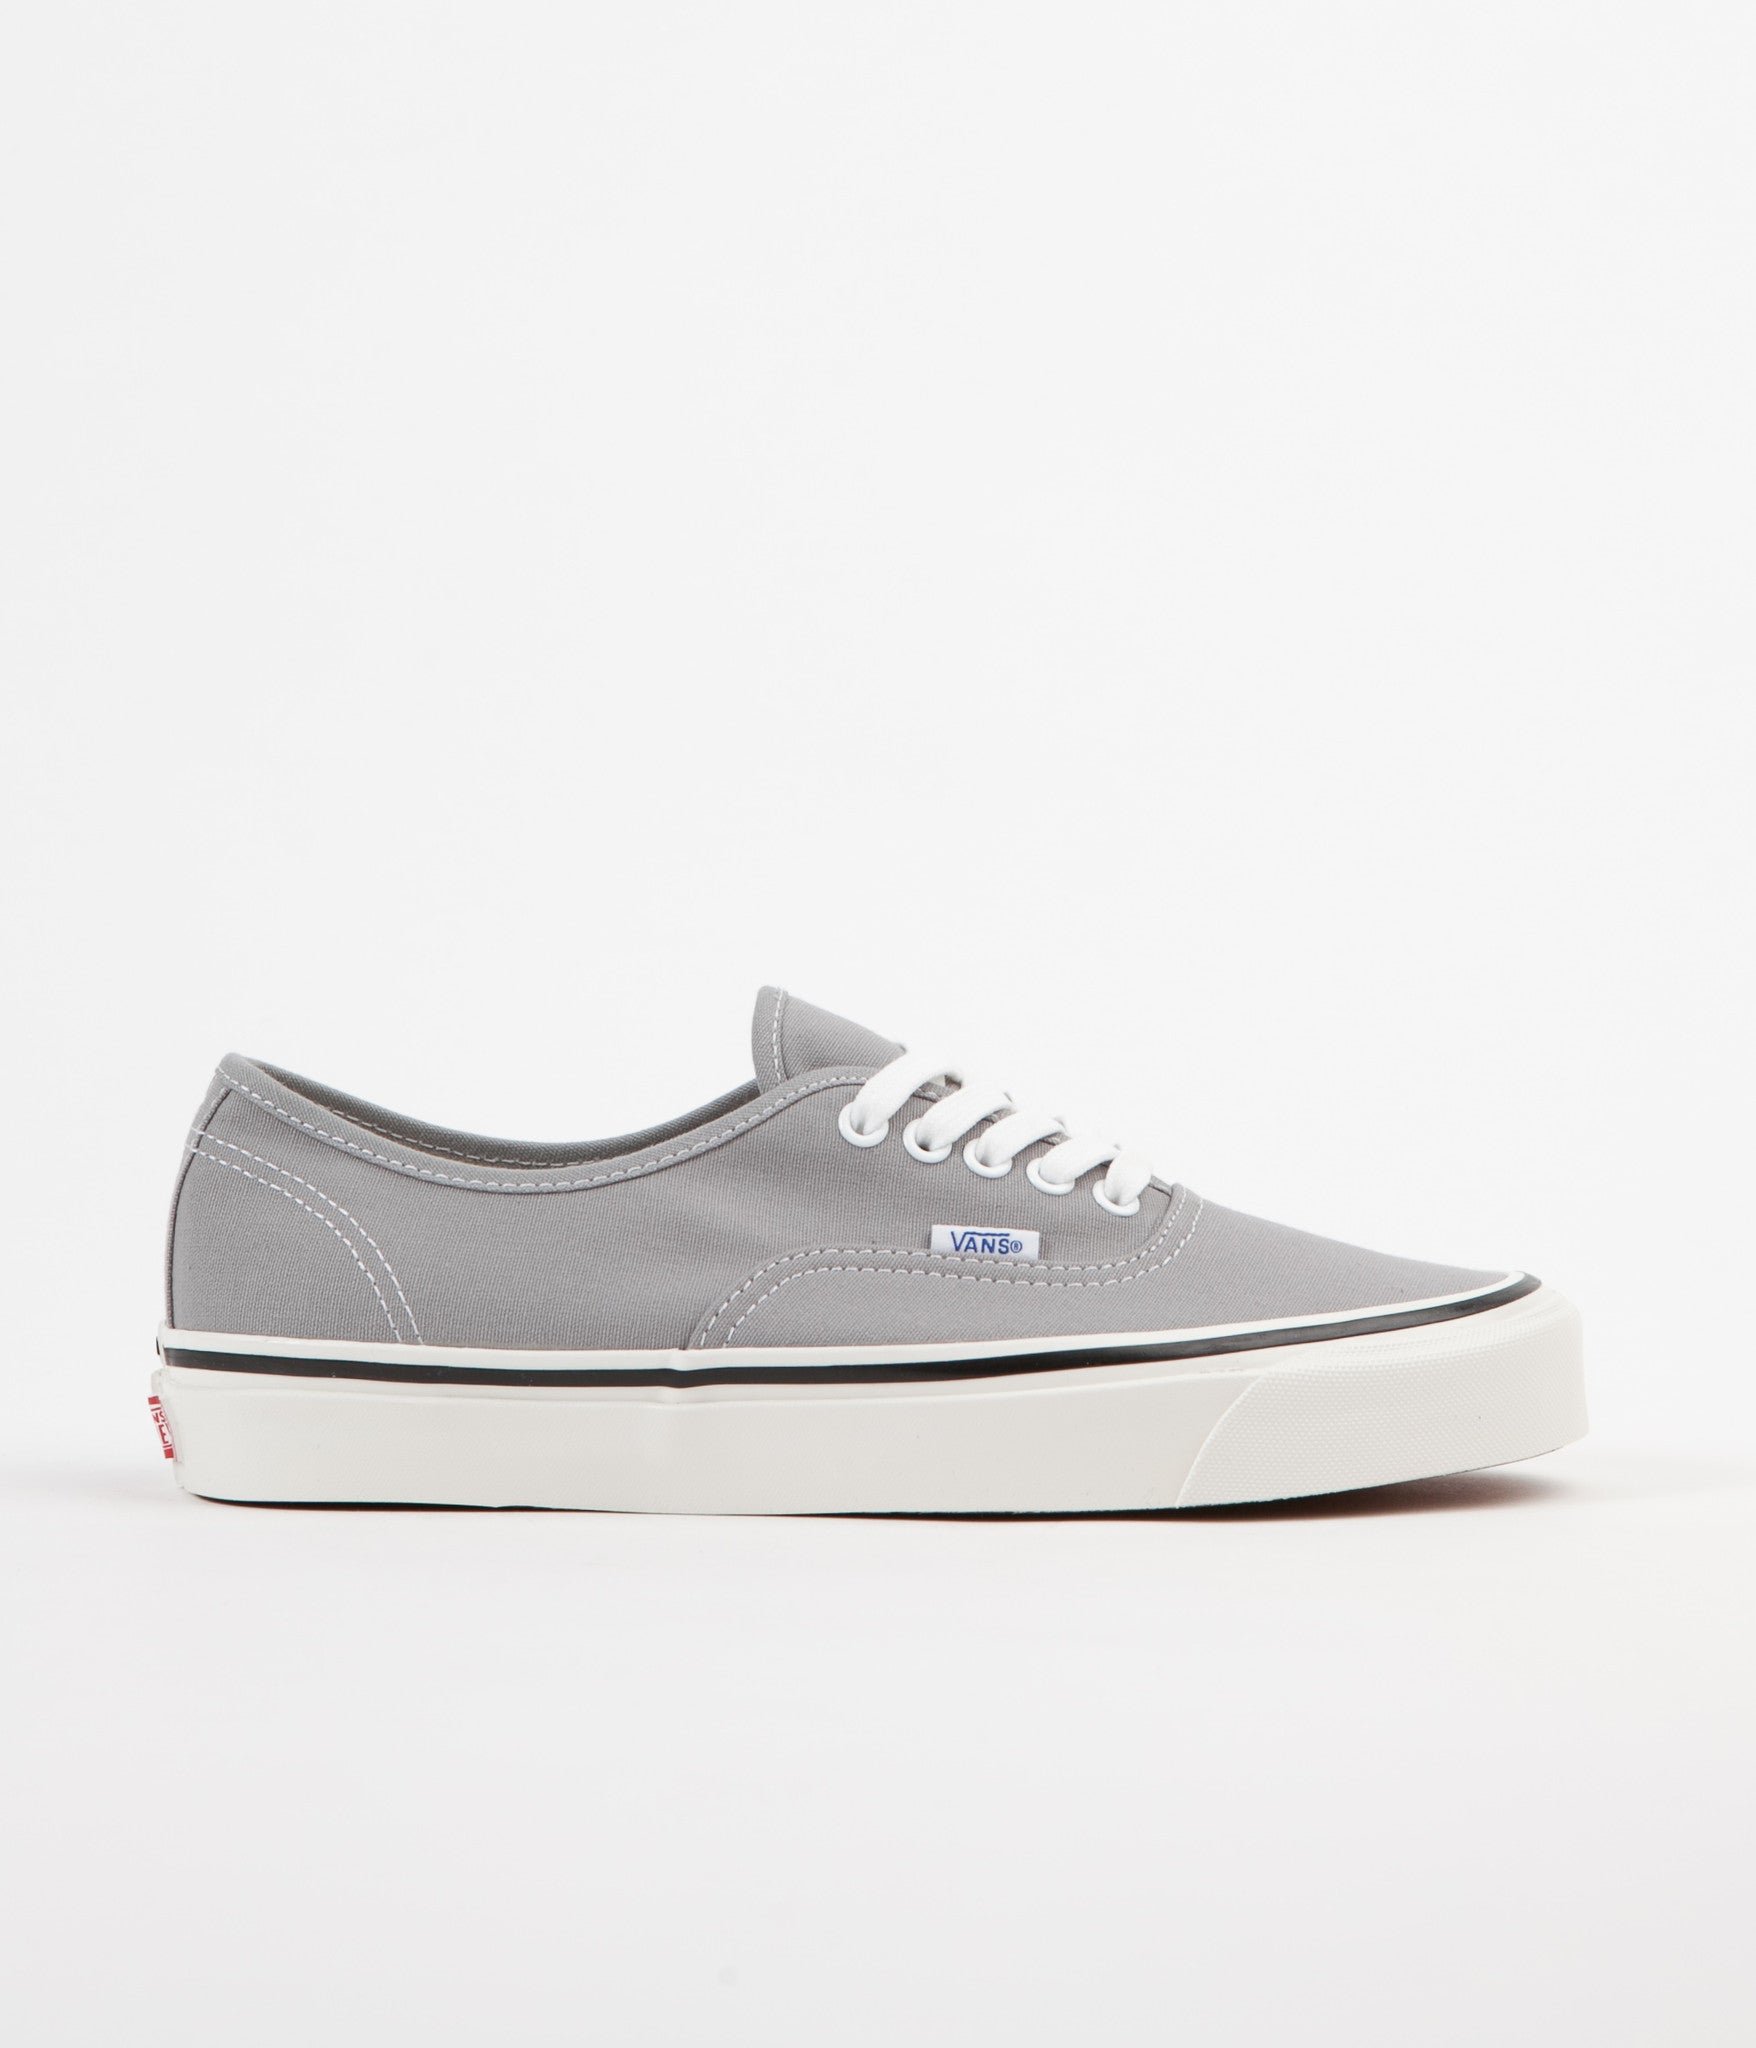 Vans Authentic 44 DX Anaheim Factory Shoes - Light Grey